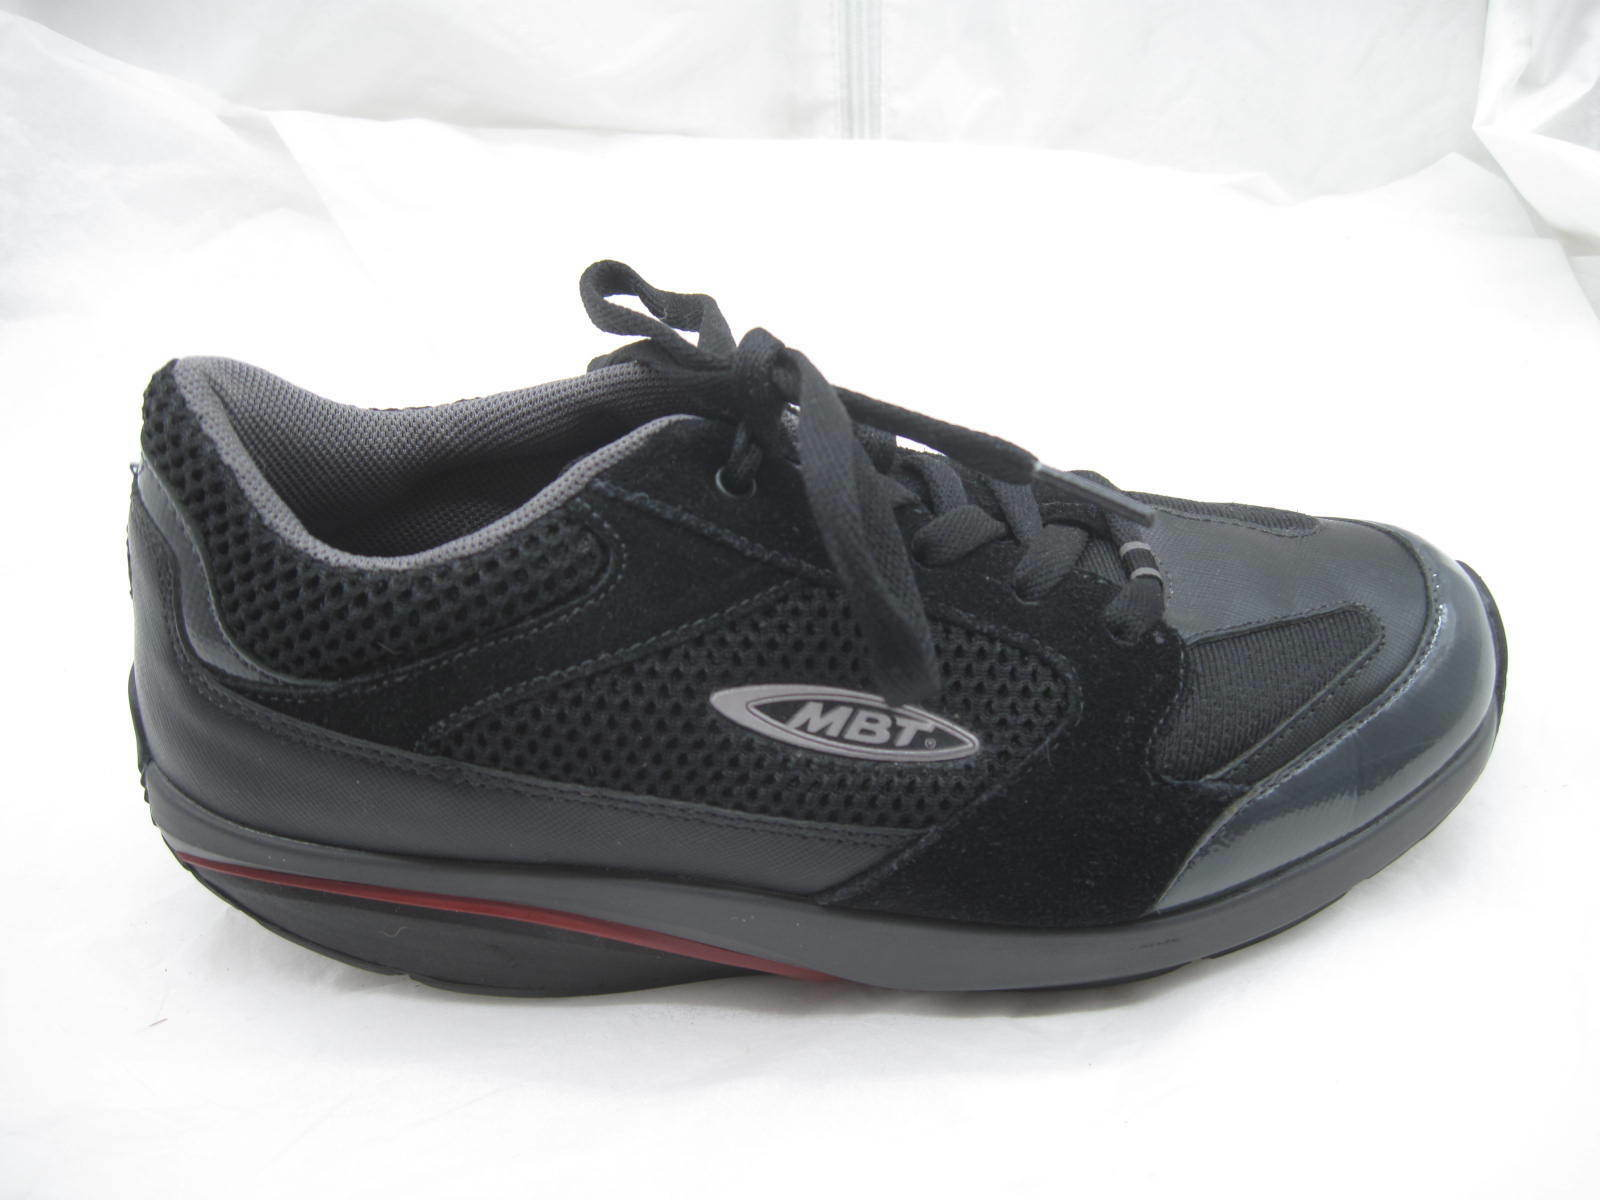 MBT From 37 2 3 7.5M black walking womens ladies toning tennis shoes 400214-03